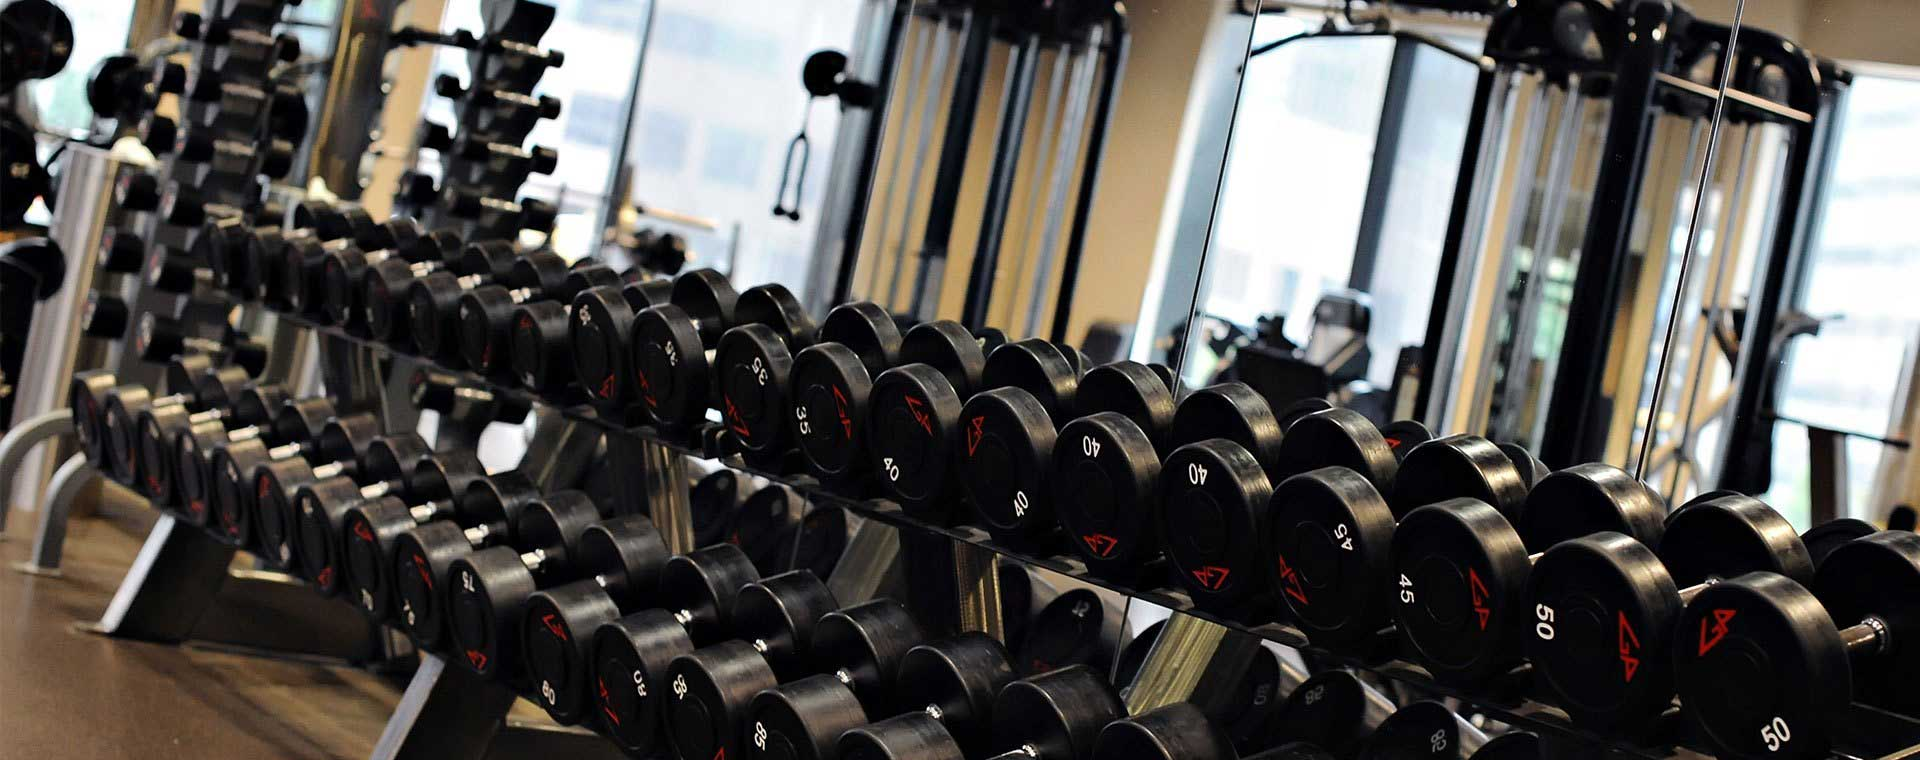 What helps to make muscles during gym training?